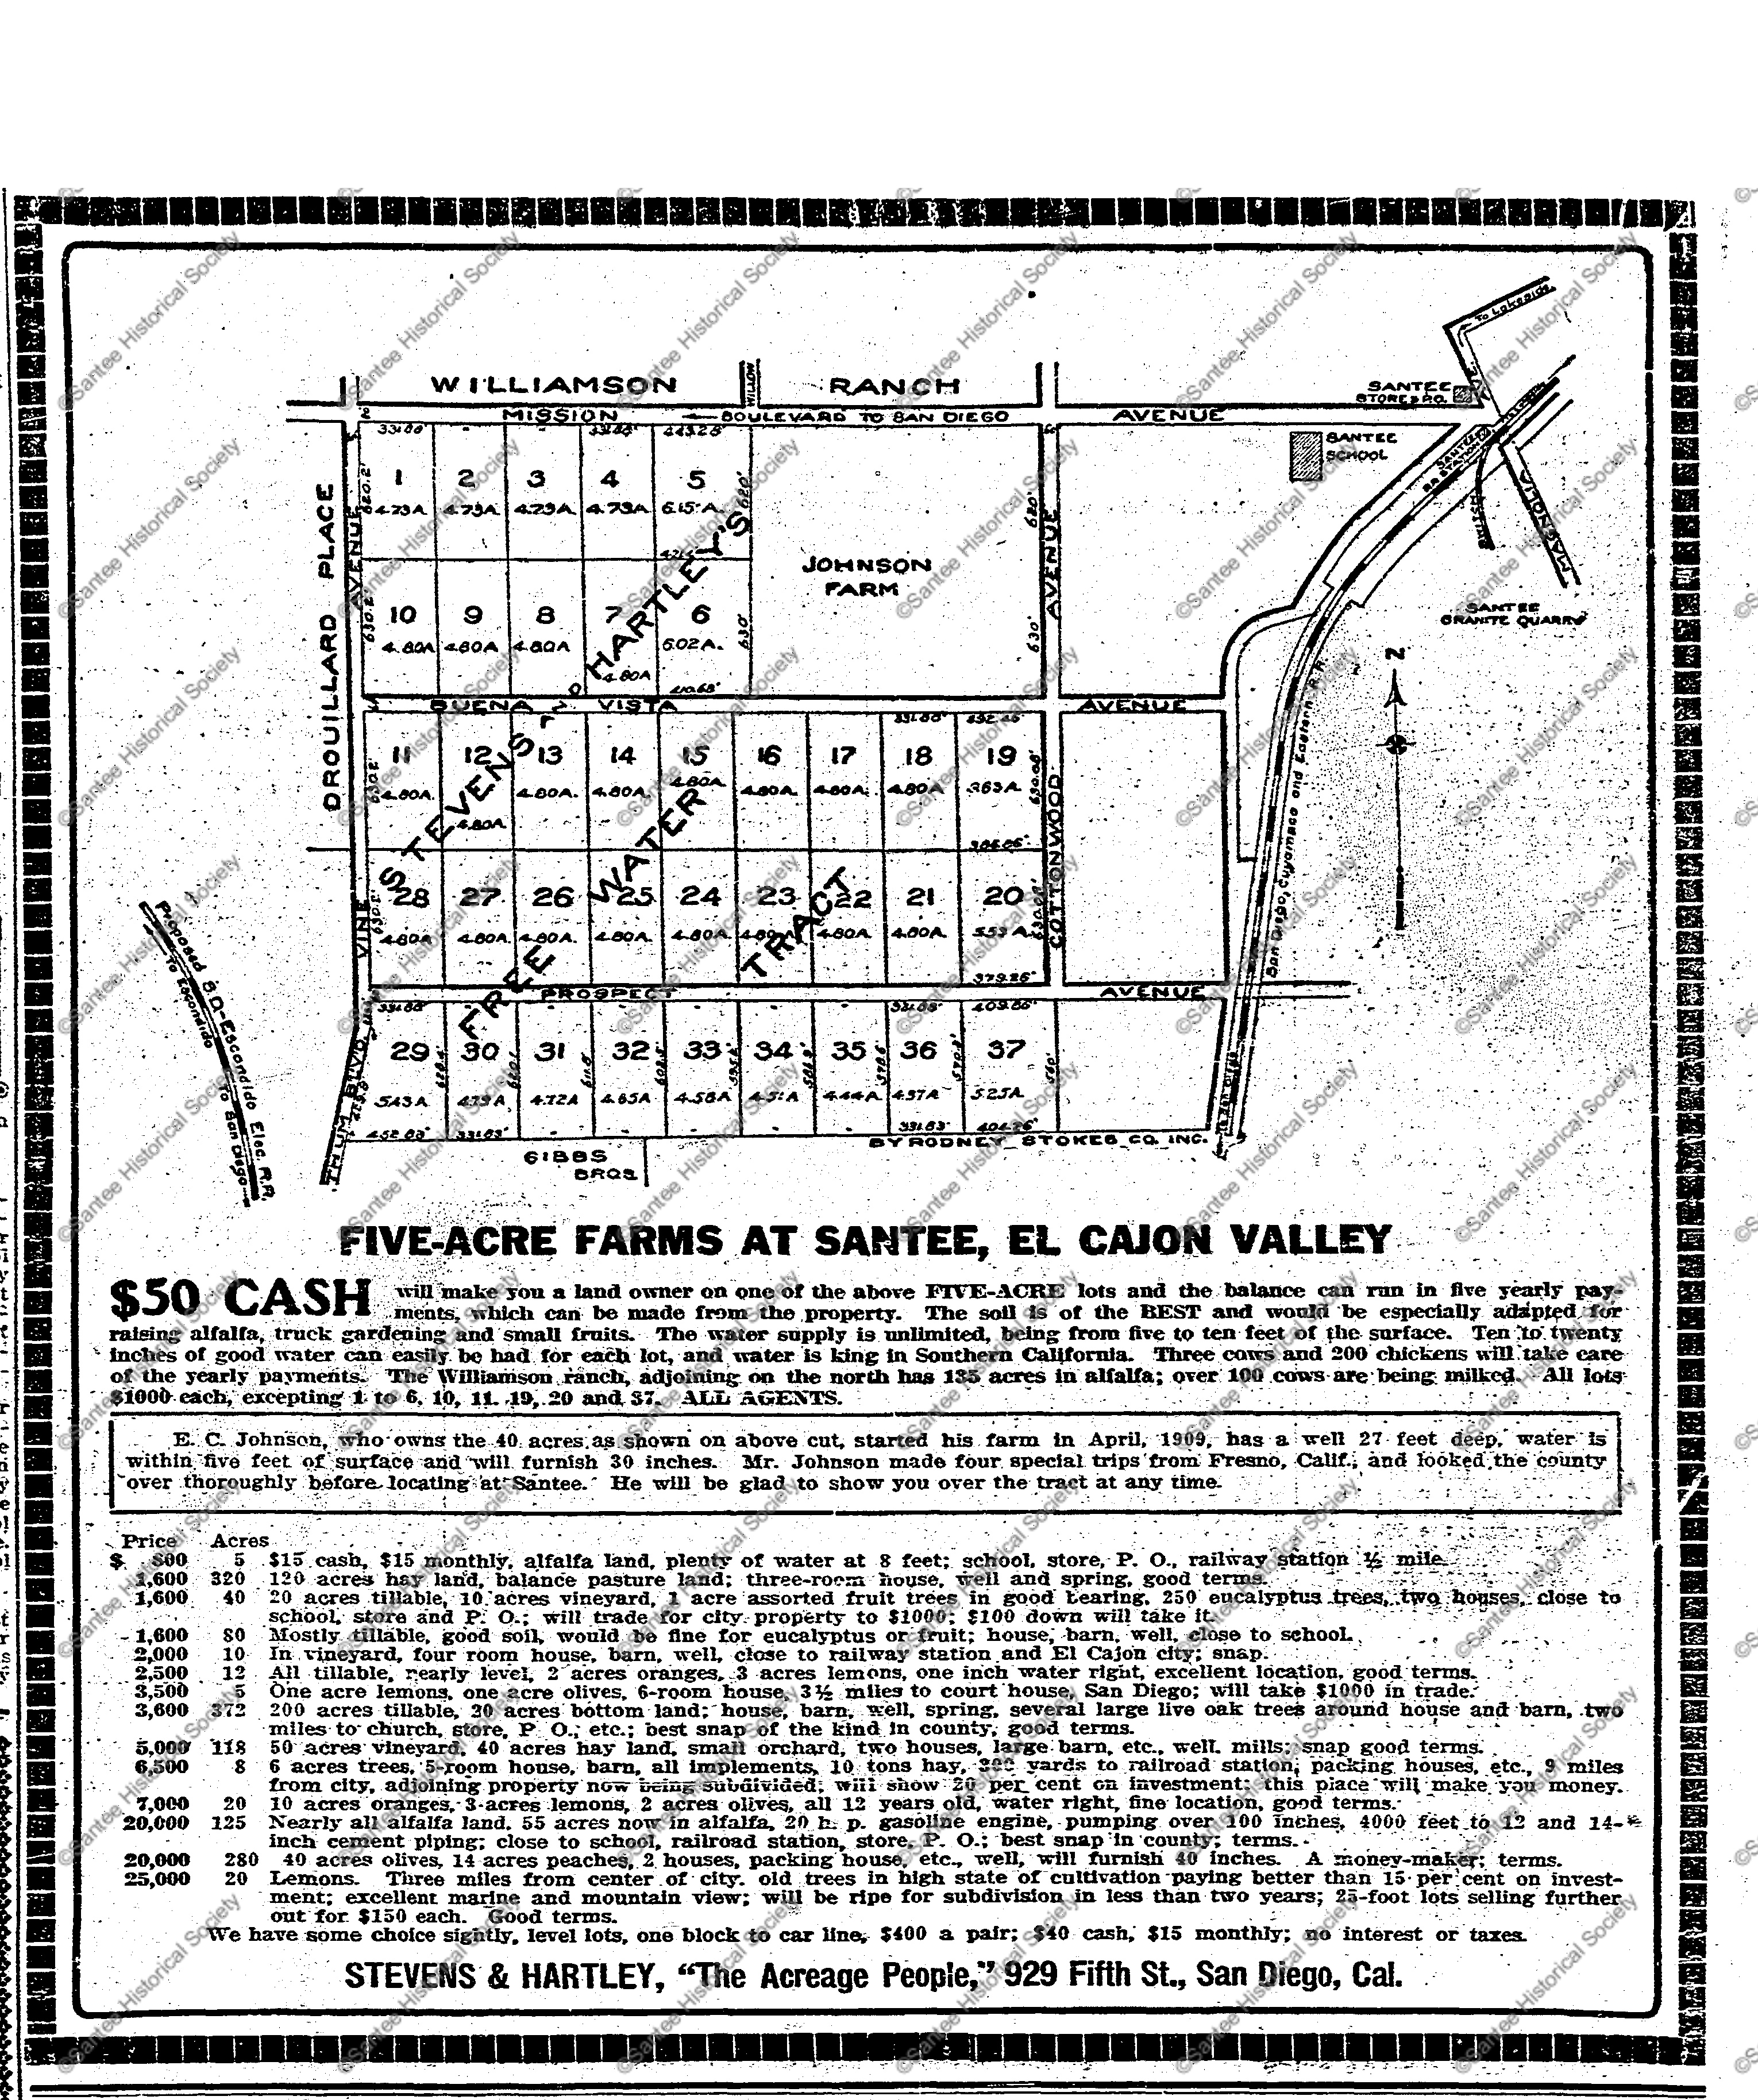 land for sale in 1910 5 acre lots the santee historical society